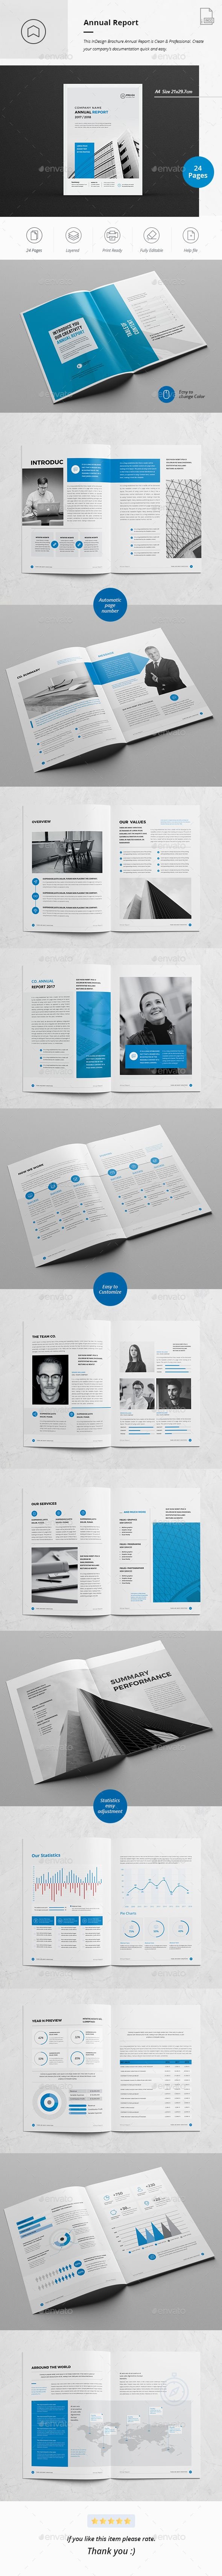 Annual Report 28 Pages — InDesign INDD #market #creative • Available here ➝ https://graphicriver.net/item/annual-report-28-pages/21014448?ref=pxcr